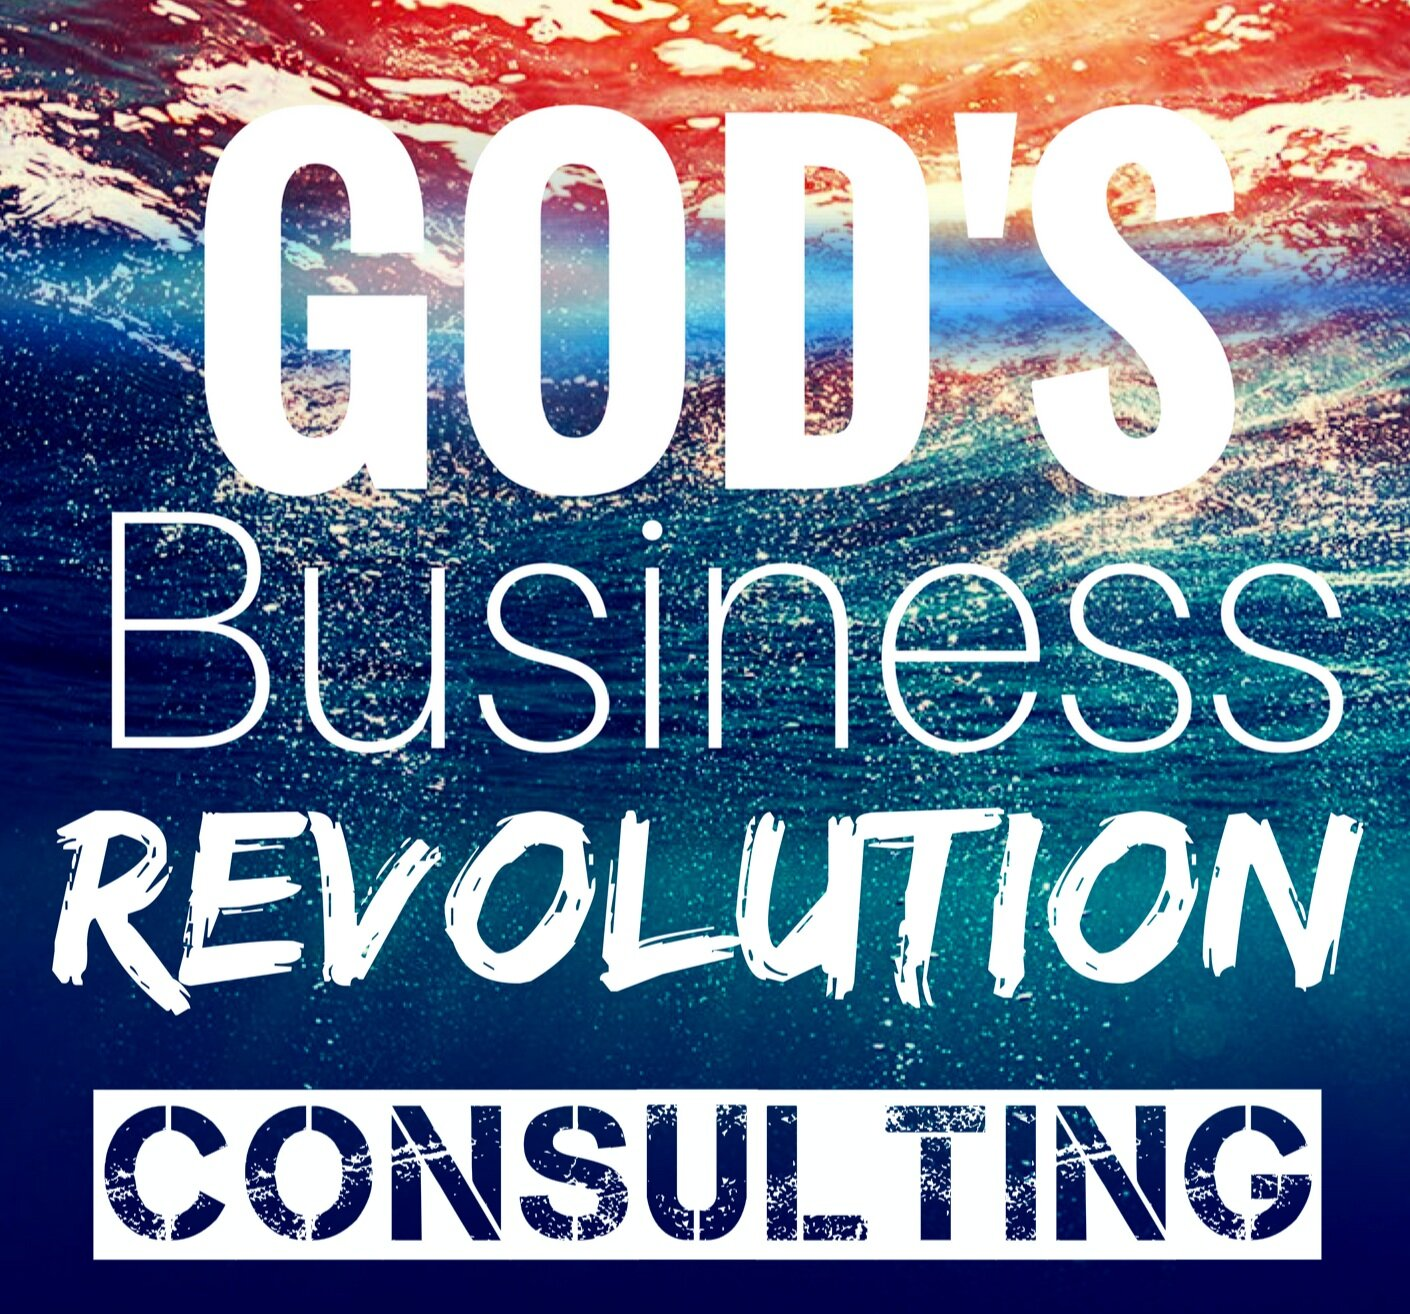 Consulting - Meridian Ministry, LLC (God's Business Revolution) was founded by Tim Porter so that business owners, leaders, and entrepreneurs may thrive both spiritually and in business.In an ongoing effort to support this cause, Tim consults with business owners, leaders, entrepreneurs, and individuals on a case by case basis.